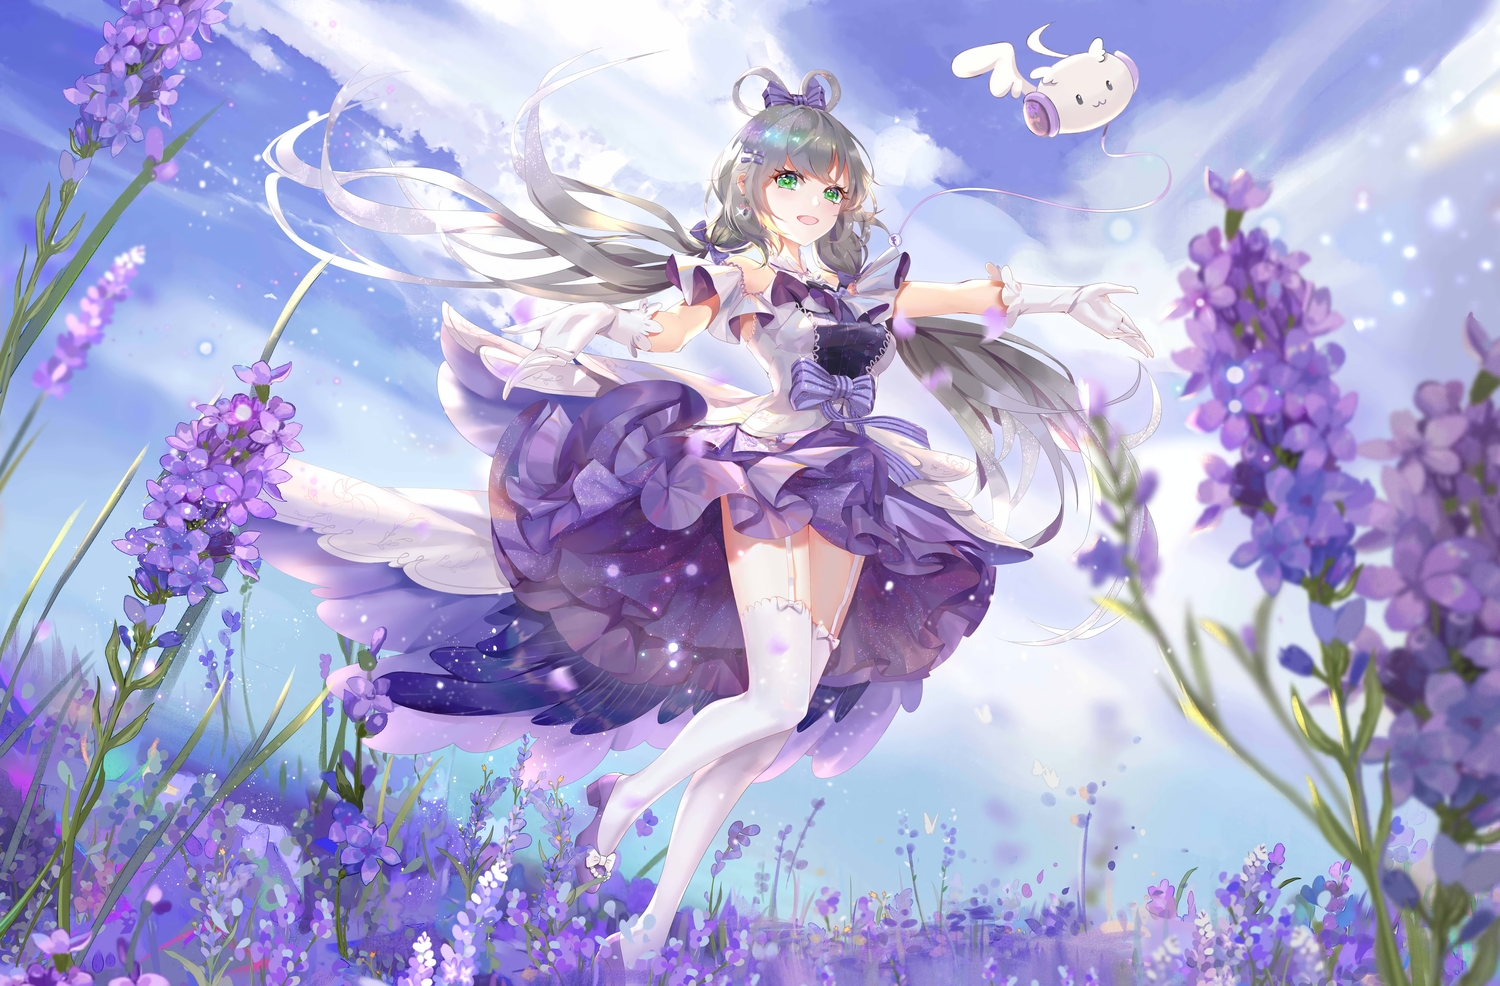 bow clouds dress flowers garter_belt gloves gray_hair green_hair lattesong long_hair luo_tianyi sky stockings twintails vocaloid vocaloid_china zettai_ryouiki